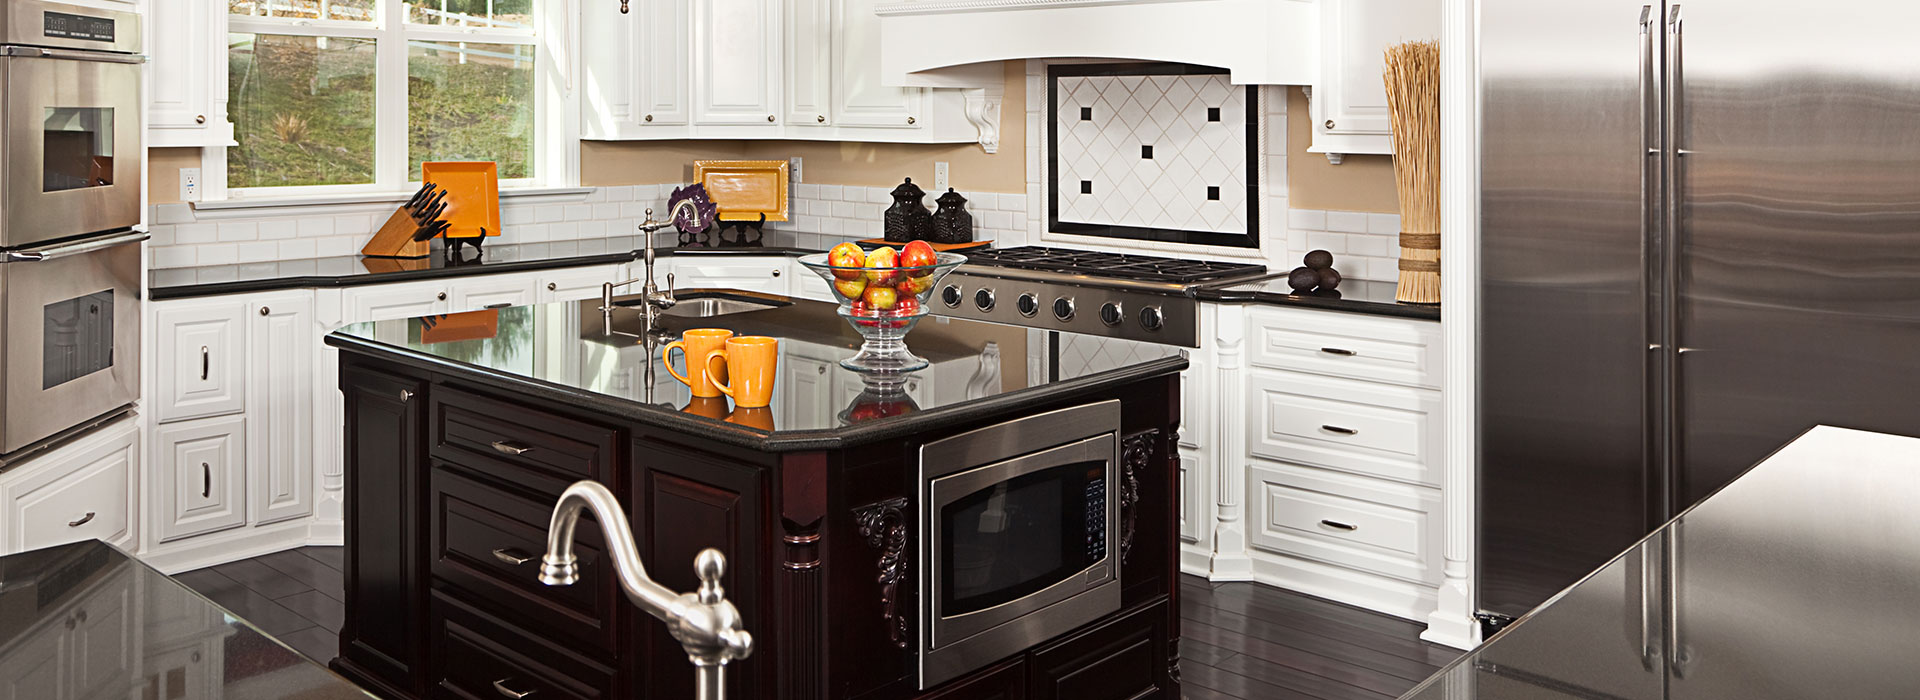 Uncategorized Kitchen Appliances Repair express appliance repair commercial virginia va residential repairs